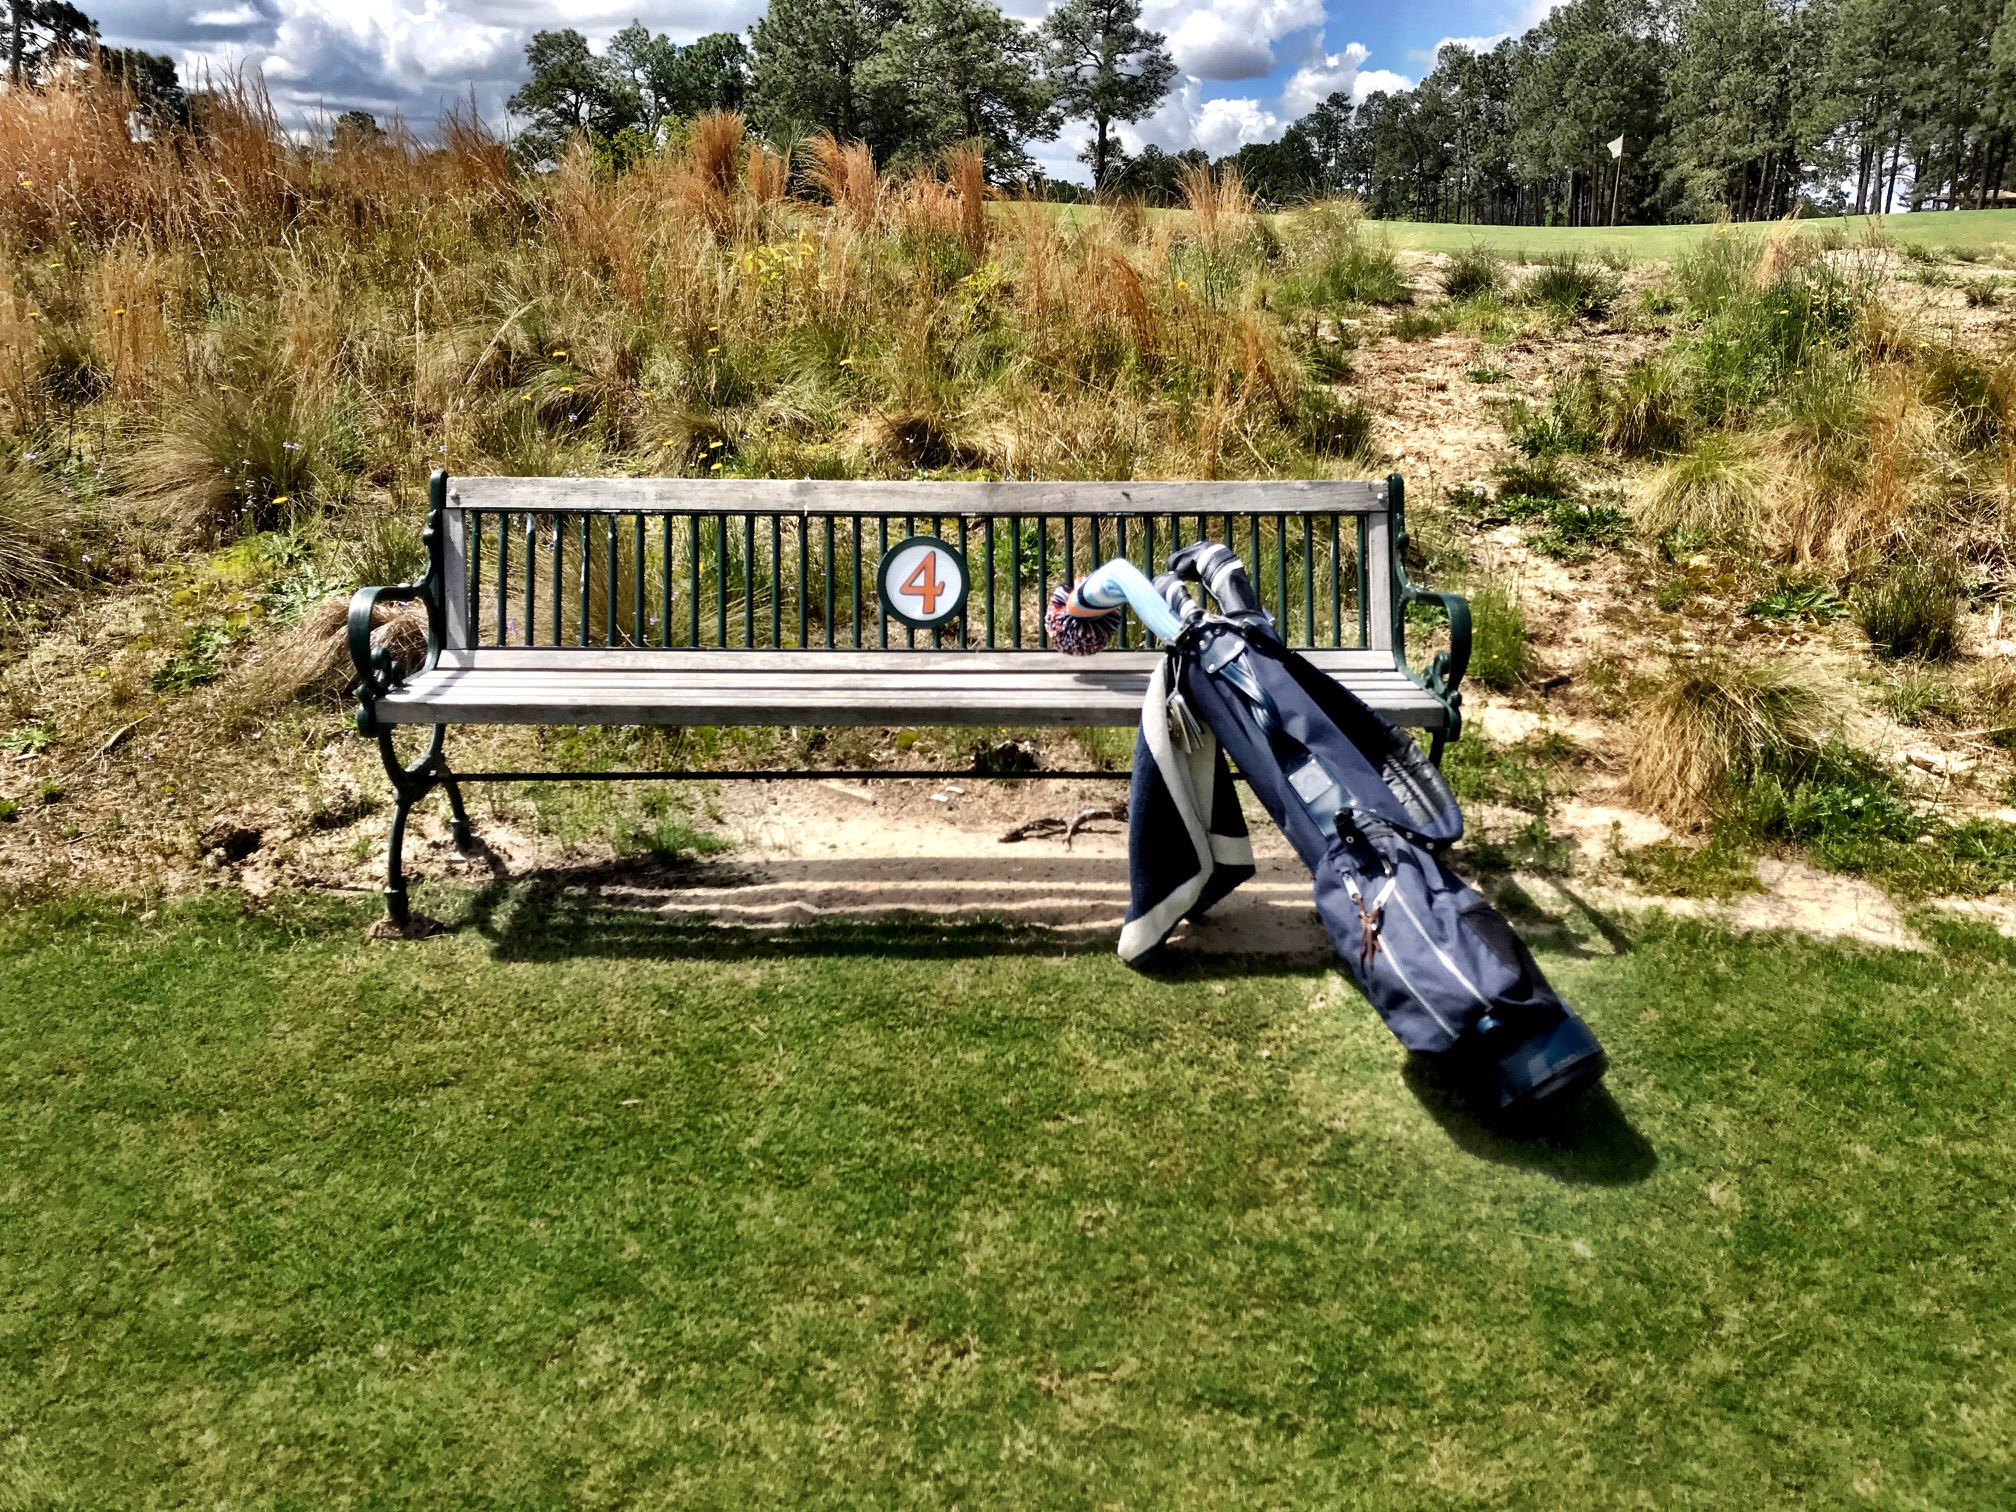 Pinehurst Resort & Country Club is among many top golf venues around the country having relaxed walking restrictions in recent years. Now members and resort guests can walk any course, any time.